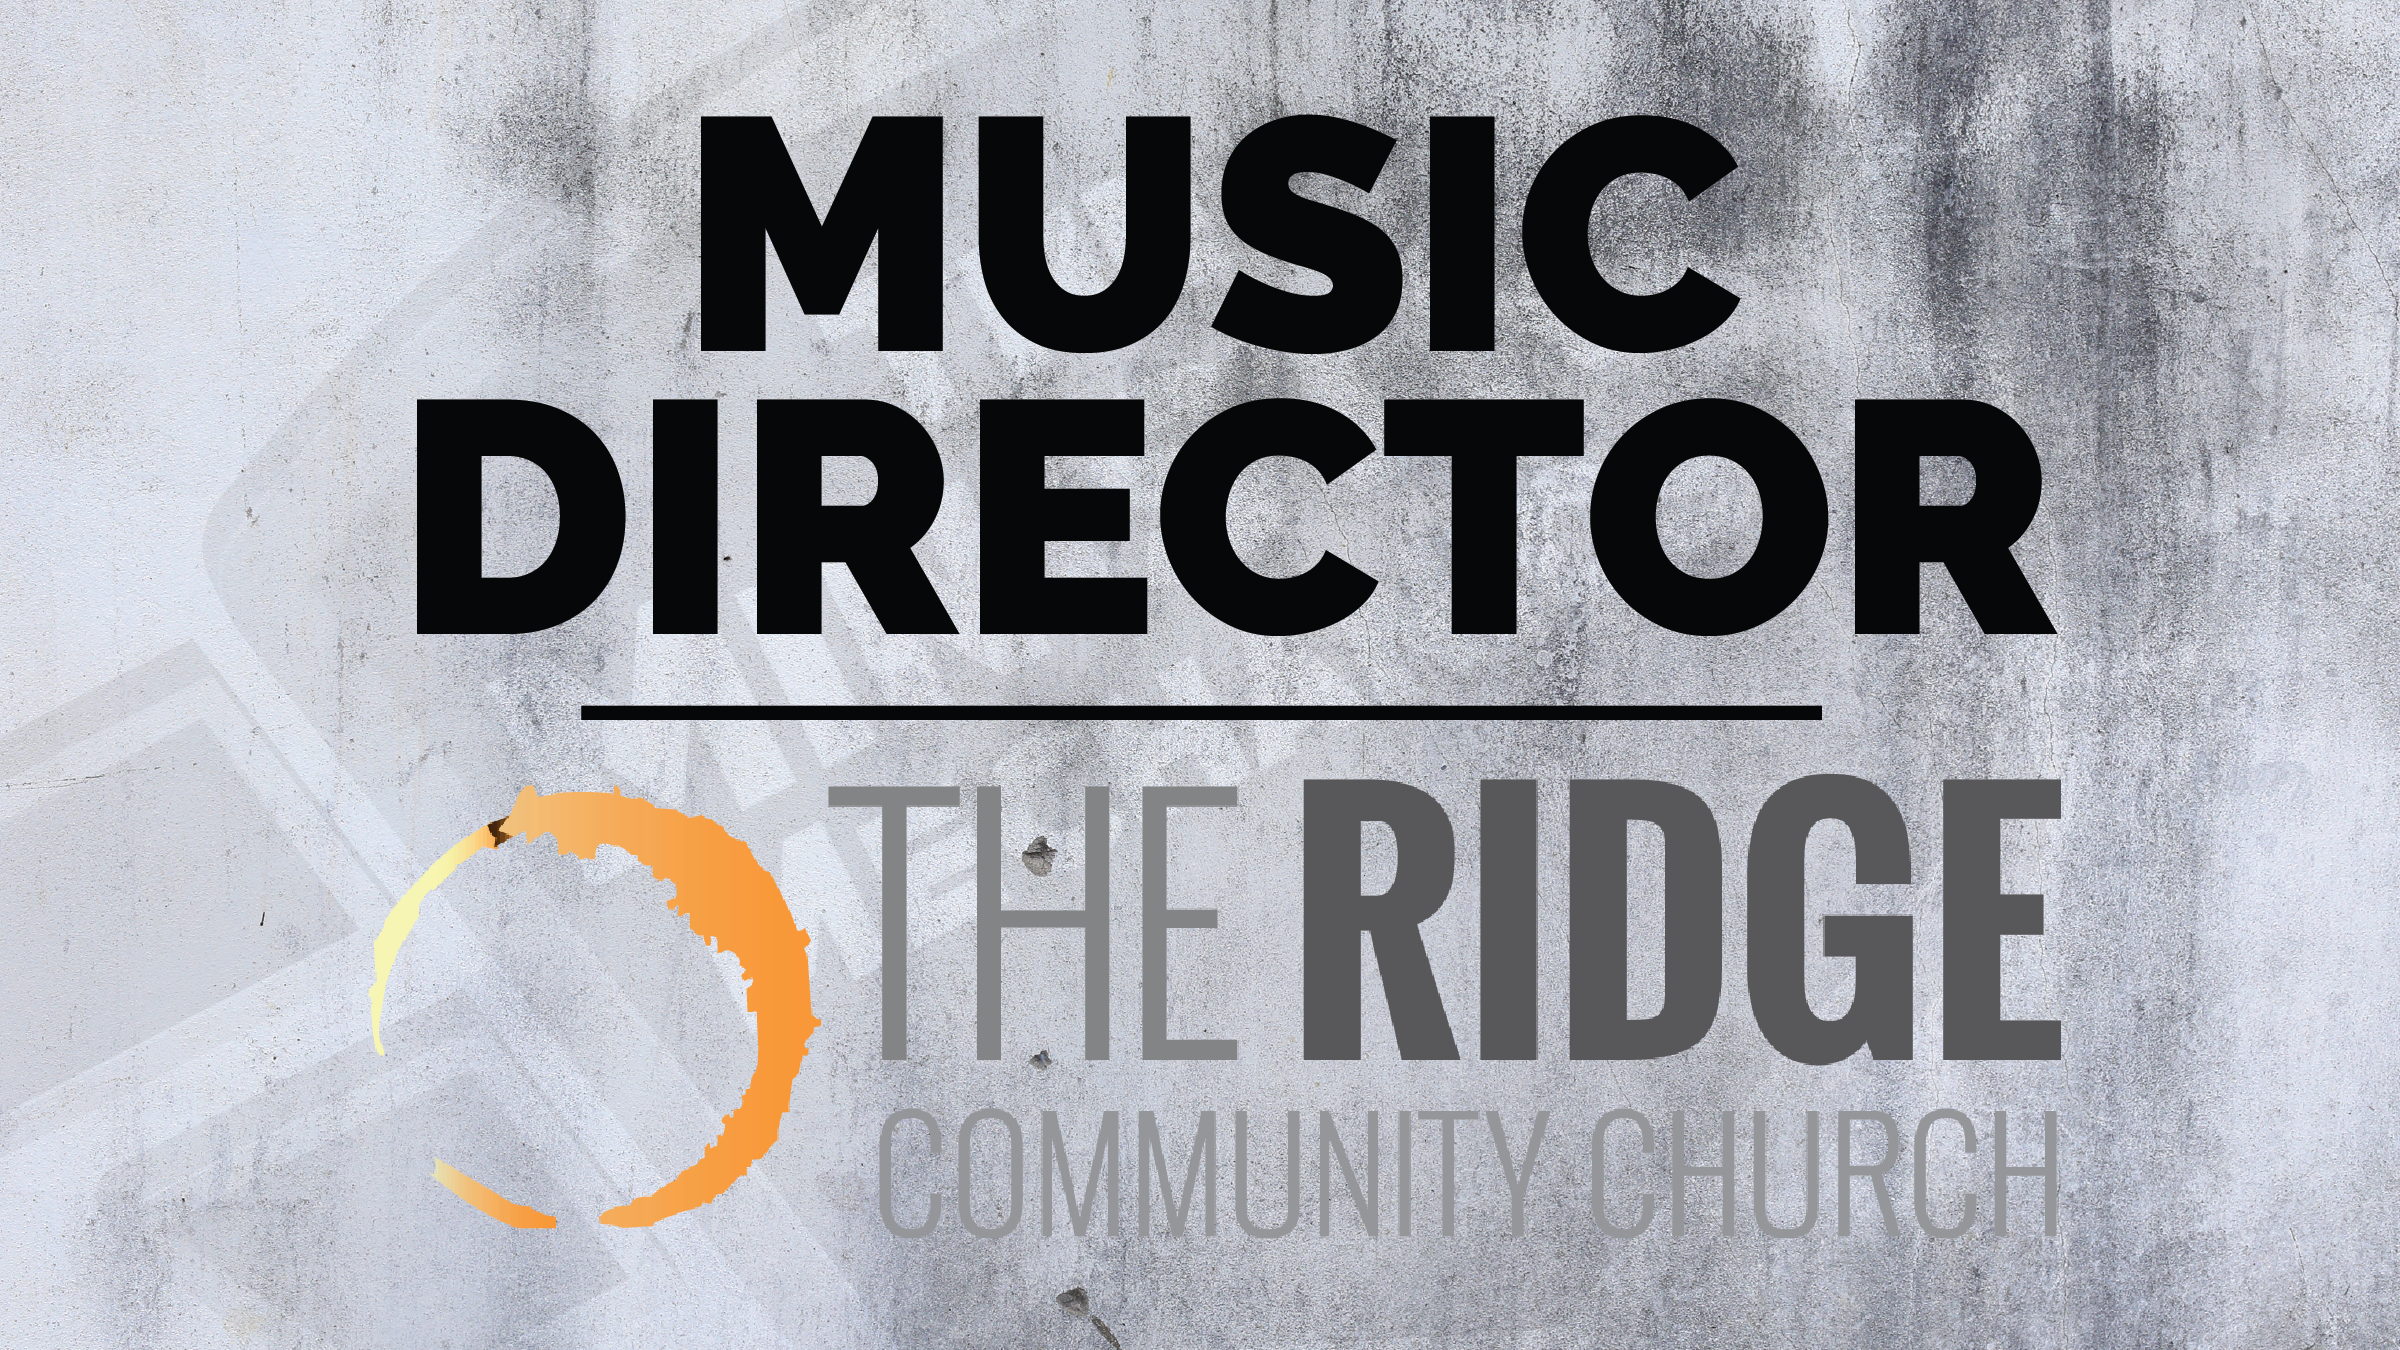 The Riedge CC Music Director 16x9-01.png